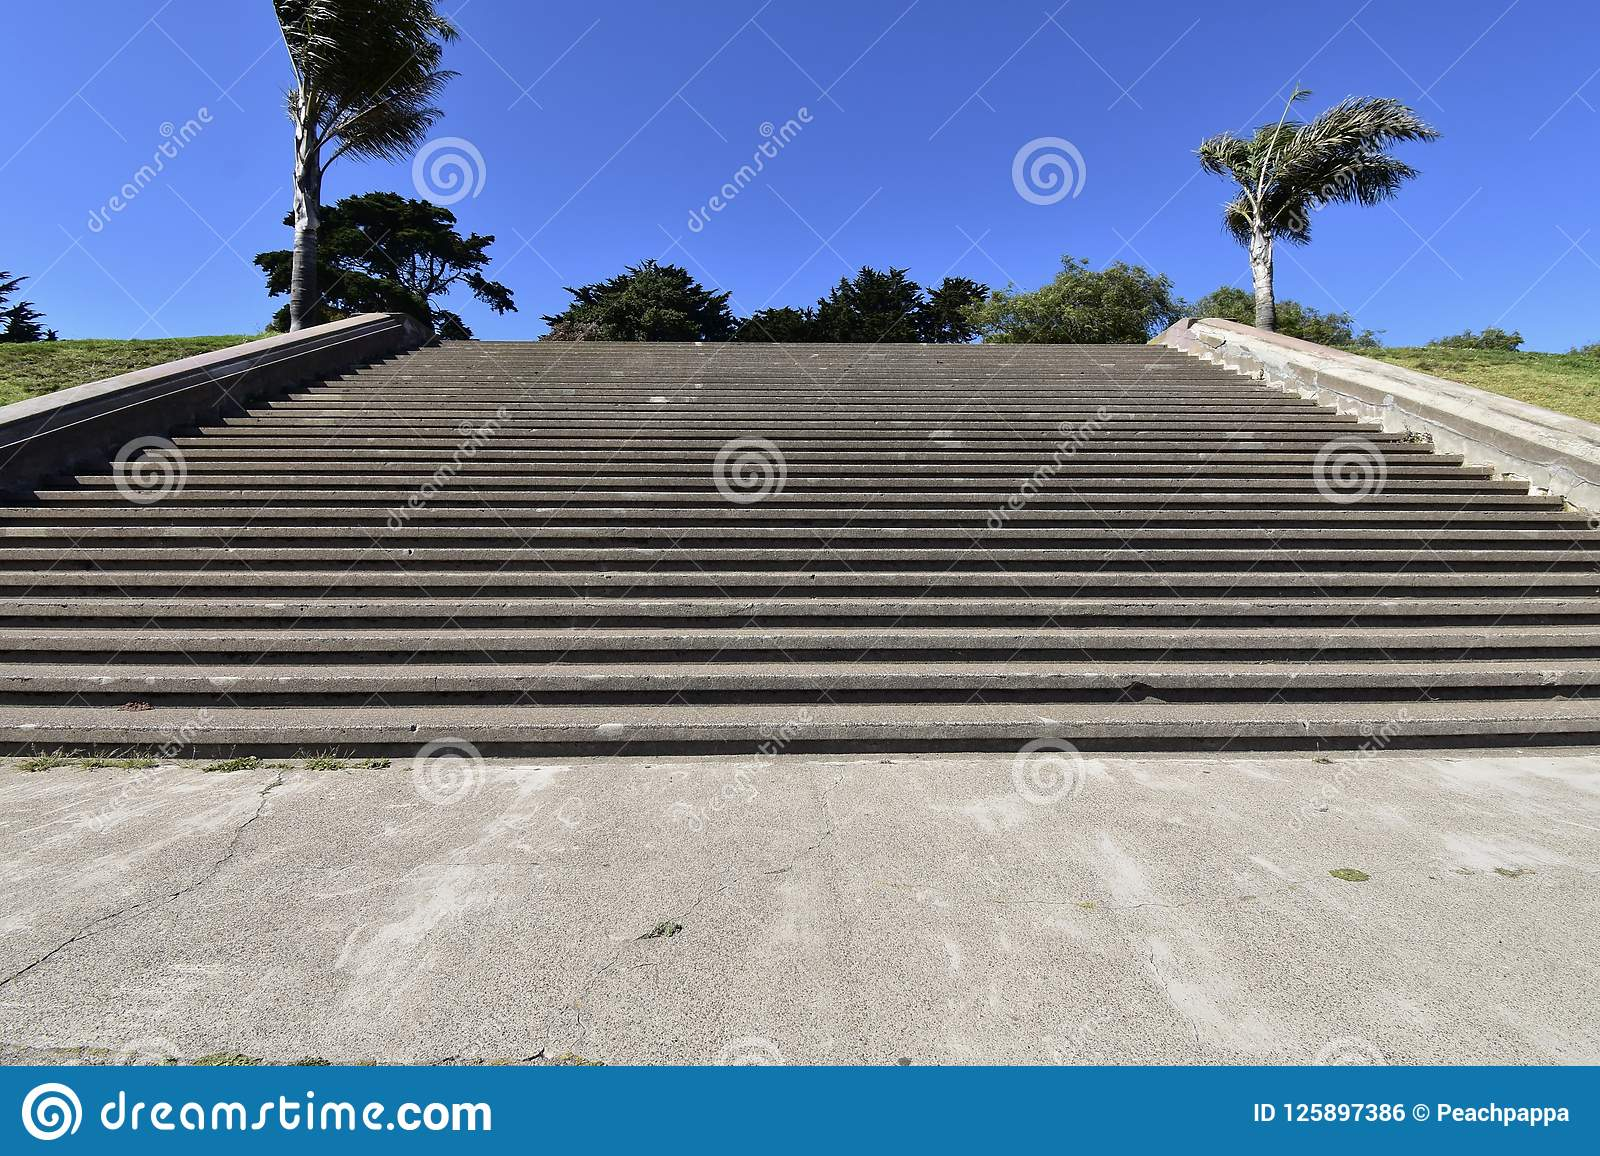 The movie damaged steps of Alta Plaza Park, 3.